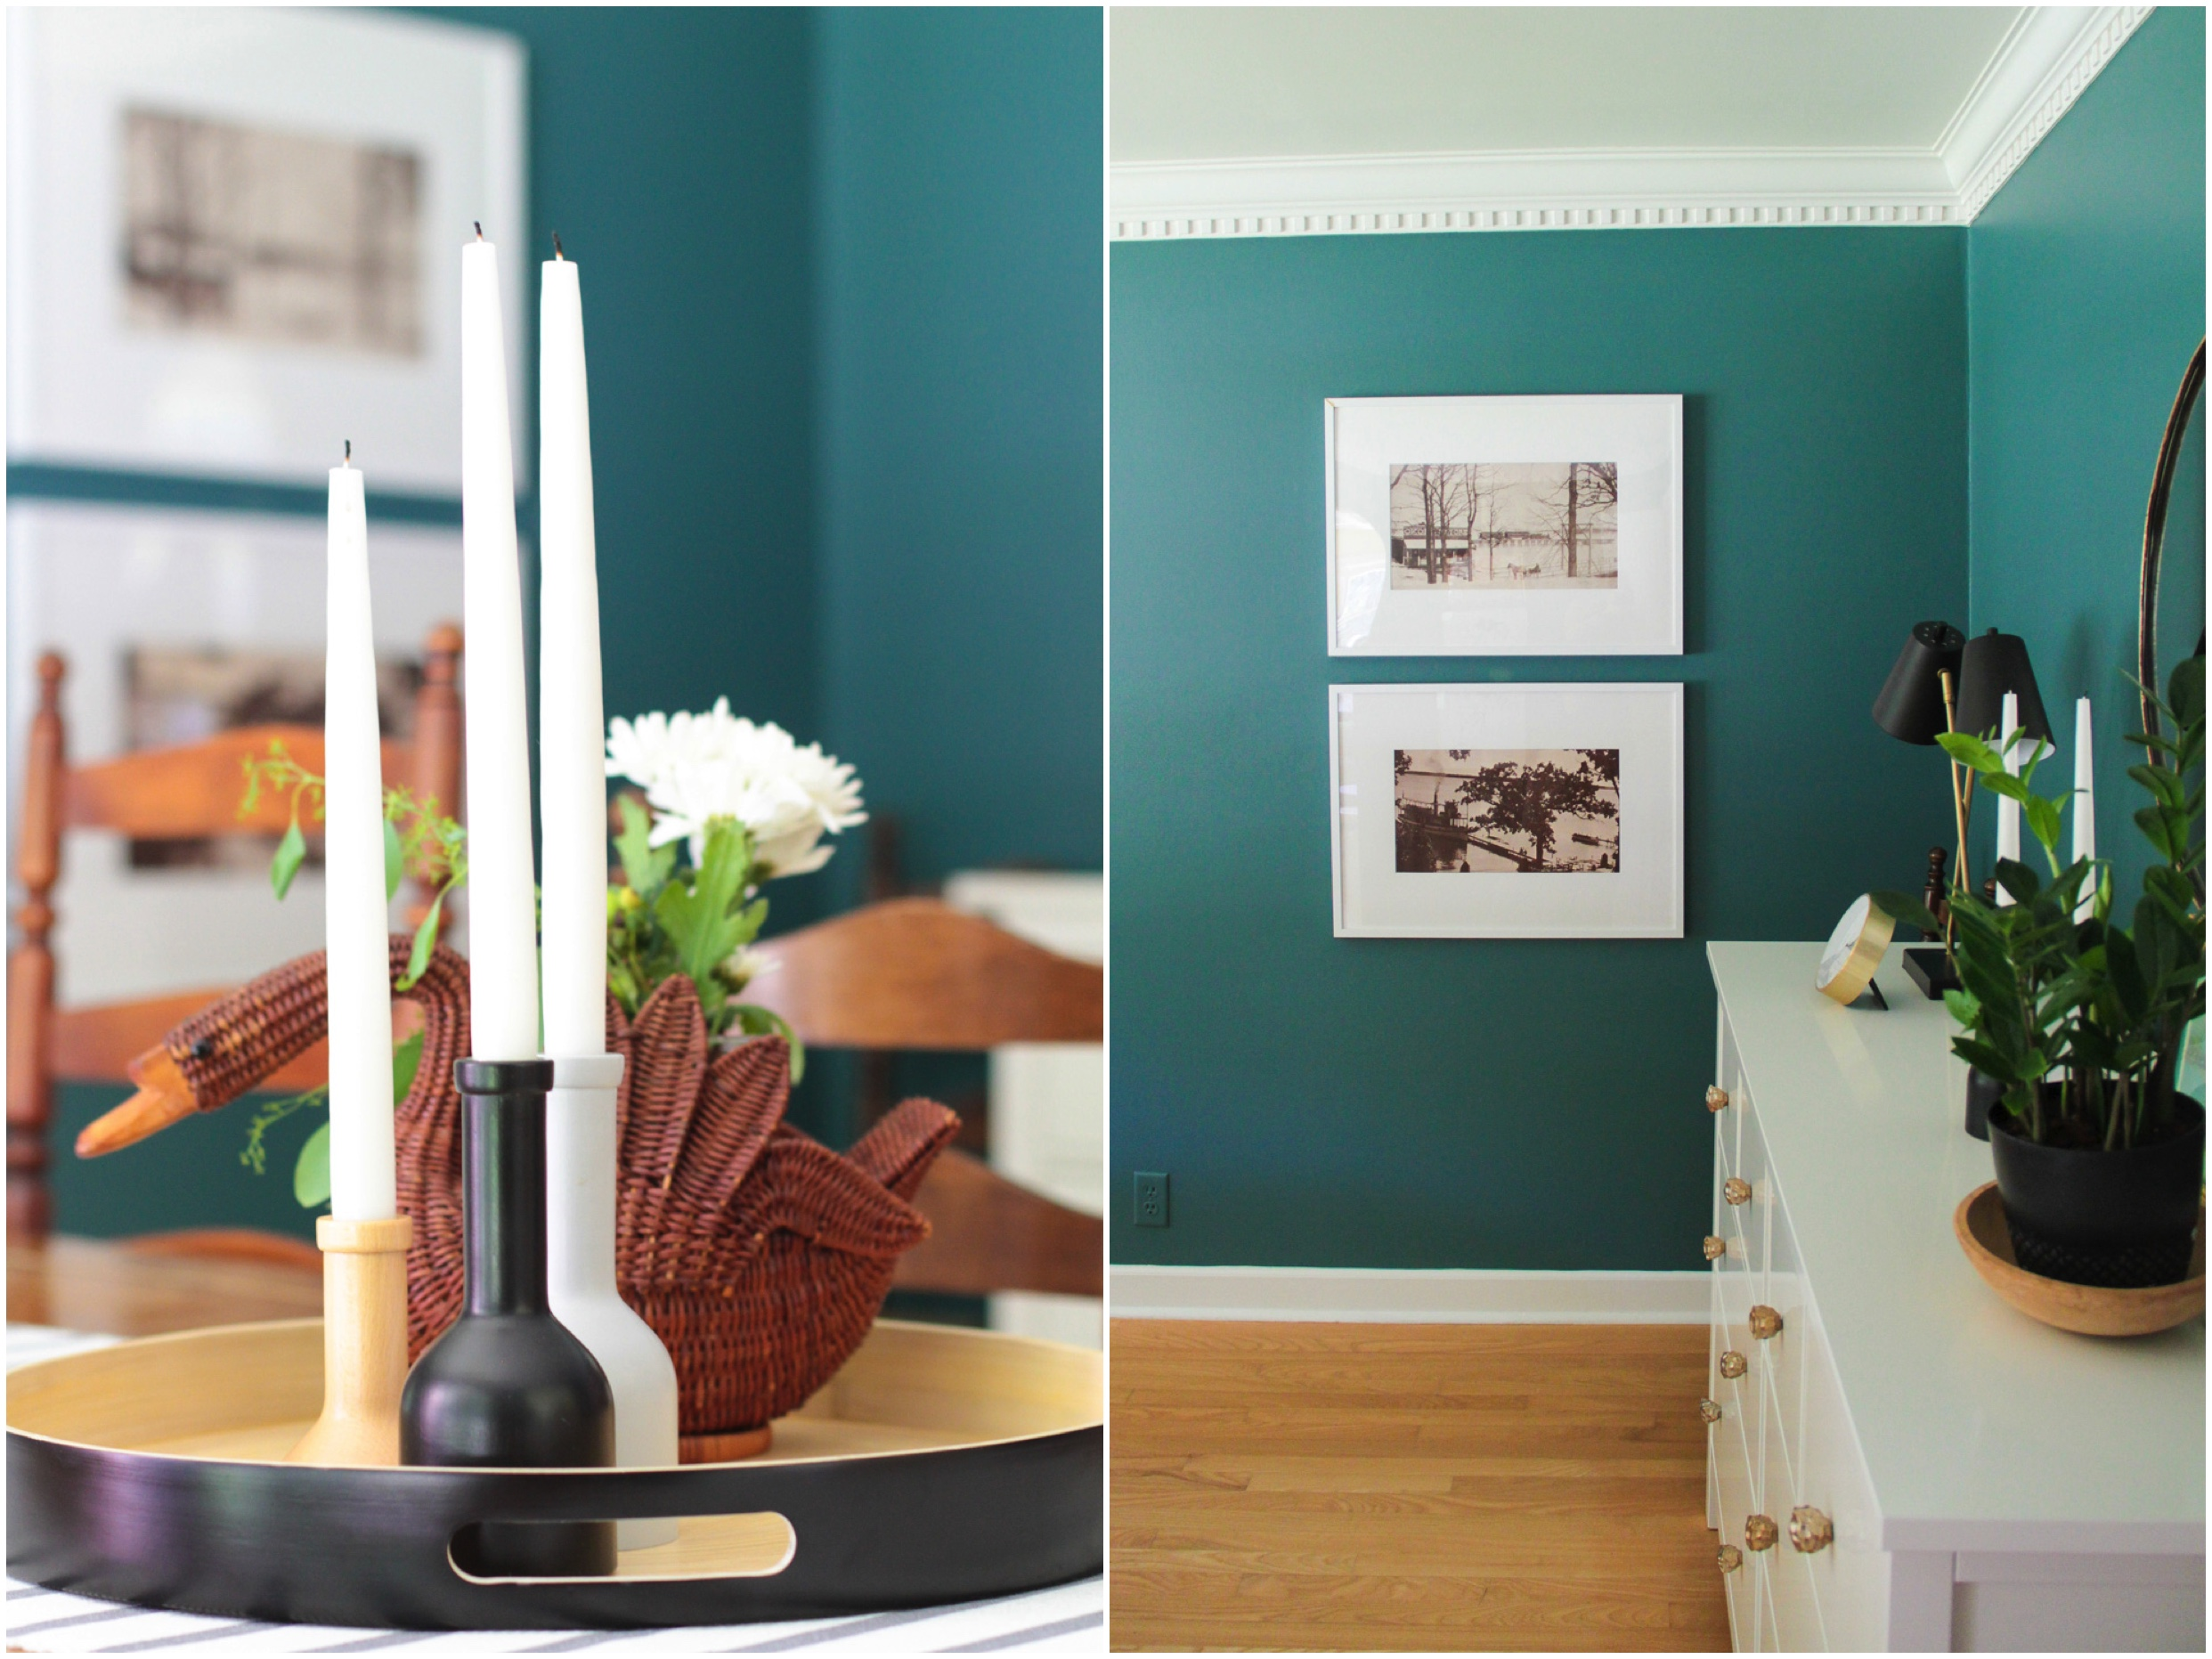 Candle Holders and Art in Green Modern Colonial Dining Room